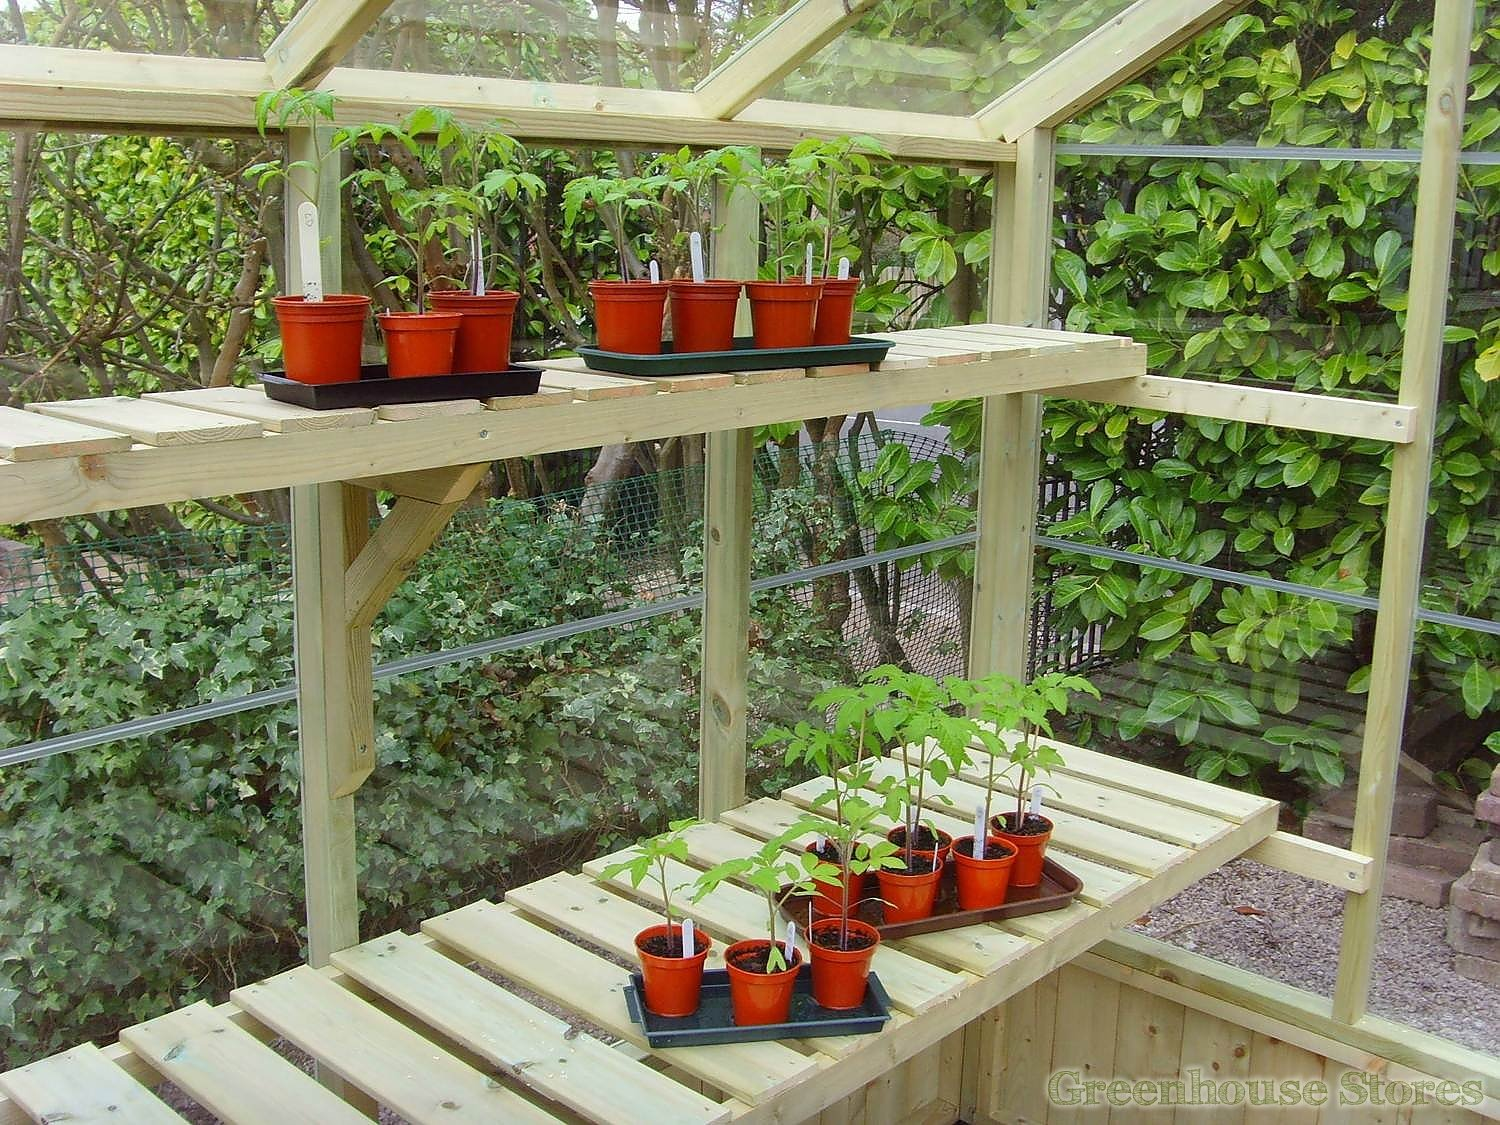 Swallow heron 8x10 lean to greenhouse greenhouse stores for Inexpensive greenhouse shelving wood